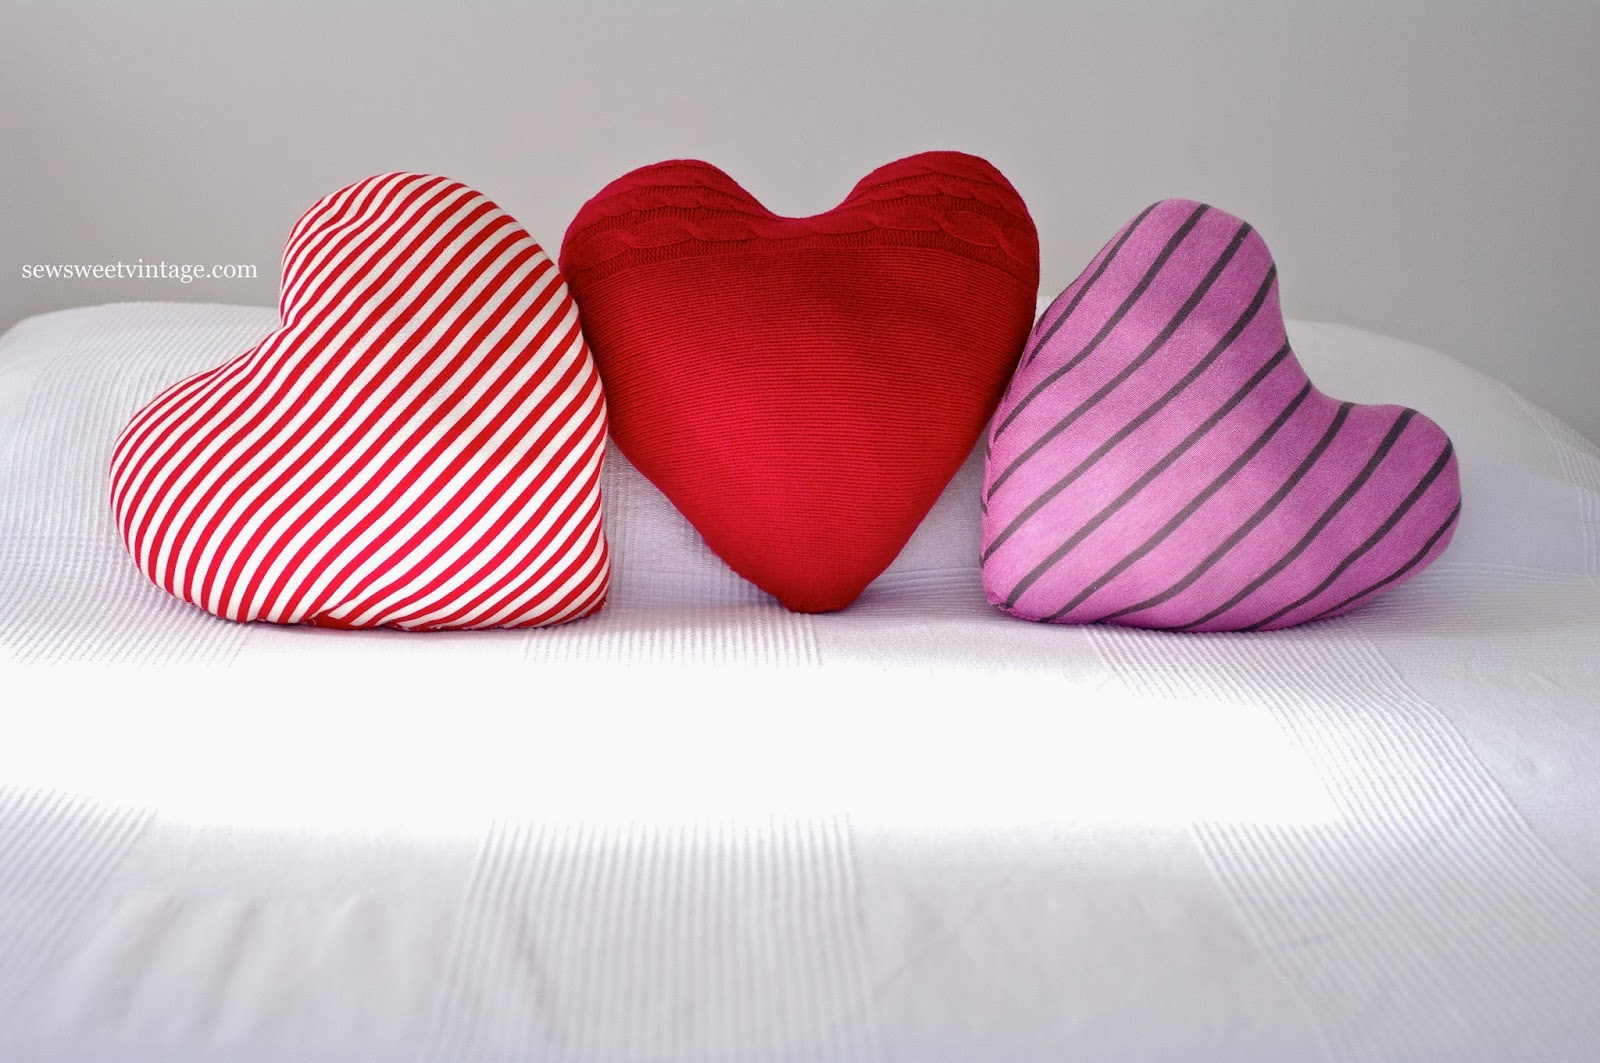 DIY heart pillow made using recycled sweater and shirt fabrics